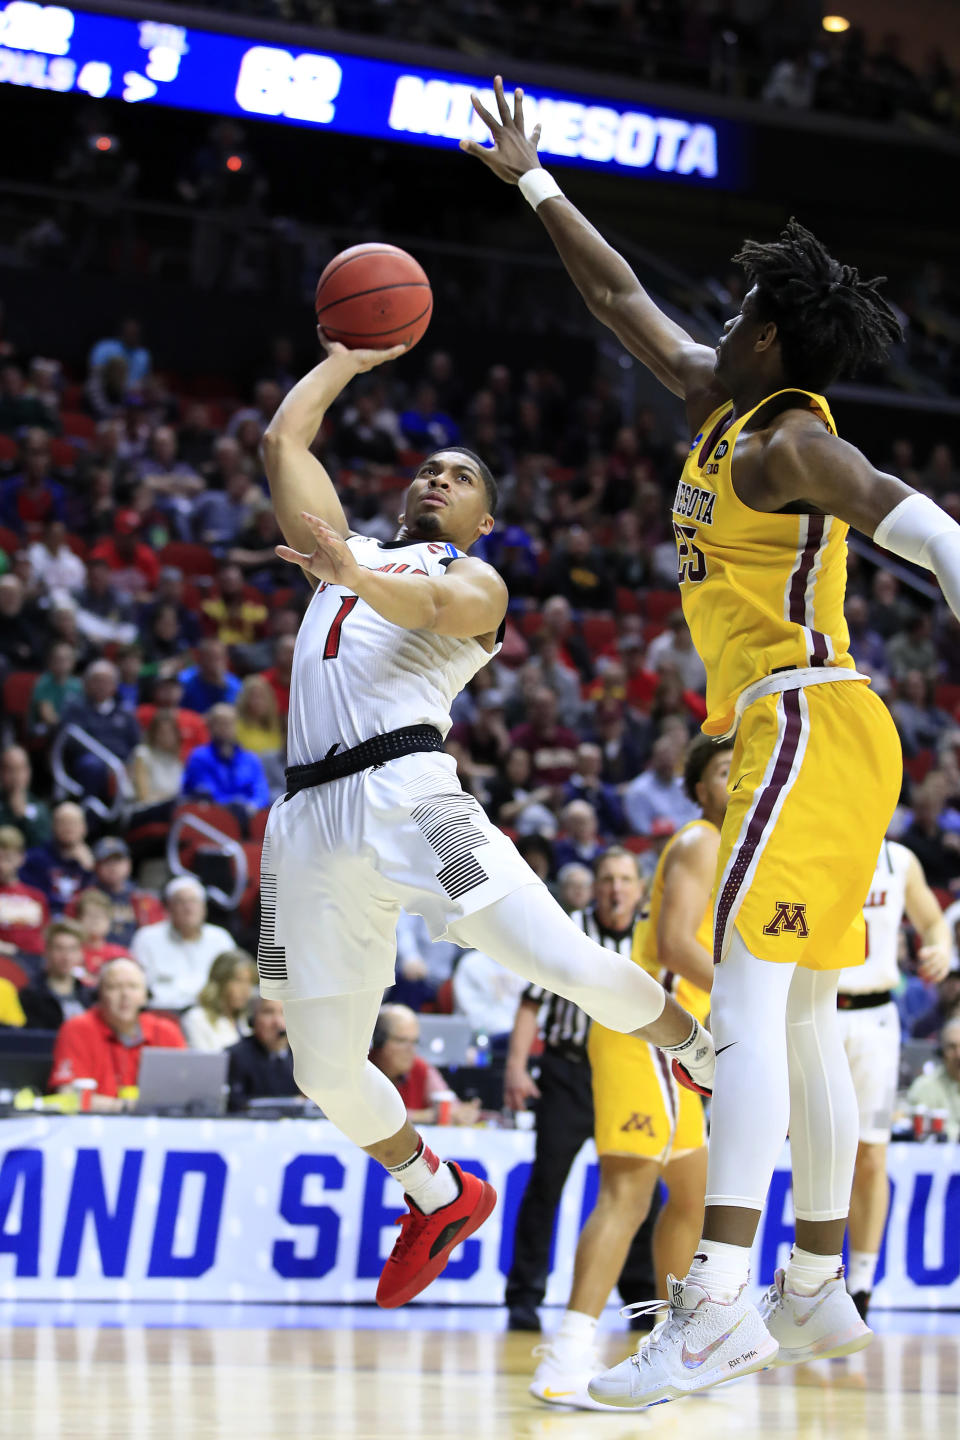 <p>Christen Cunningham #1 of the Louisville Cardinals takes a shot against Daniel Oturu #25 of the Minnesota Golden Gophers during their game in the First Round of the NCAA Basketball Tournament at Wells Fargo Arena on March 21, 2019 in Des Moines, Iowa. (Photo by Andy Lyons/Getty Images) </p>